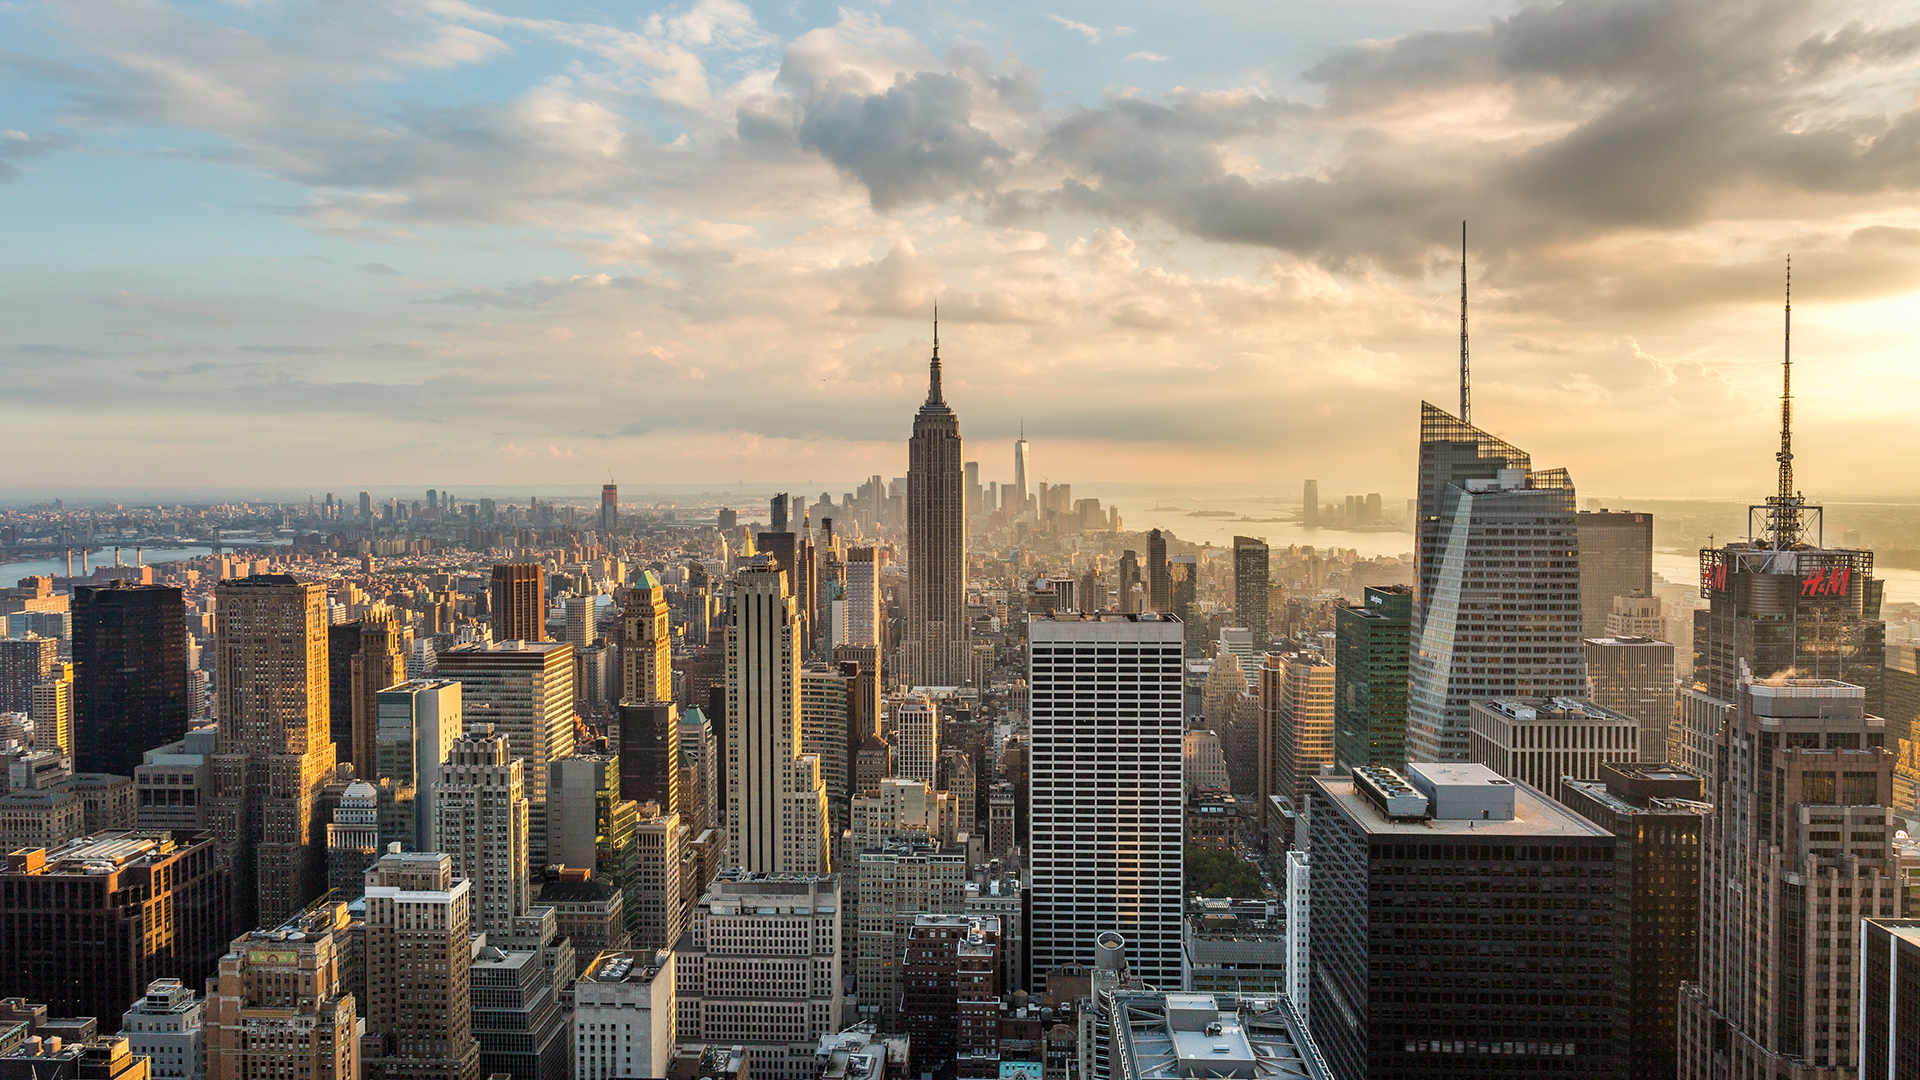 4k New York City Skyline Day To Night Sunset Emeric S Timelapse